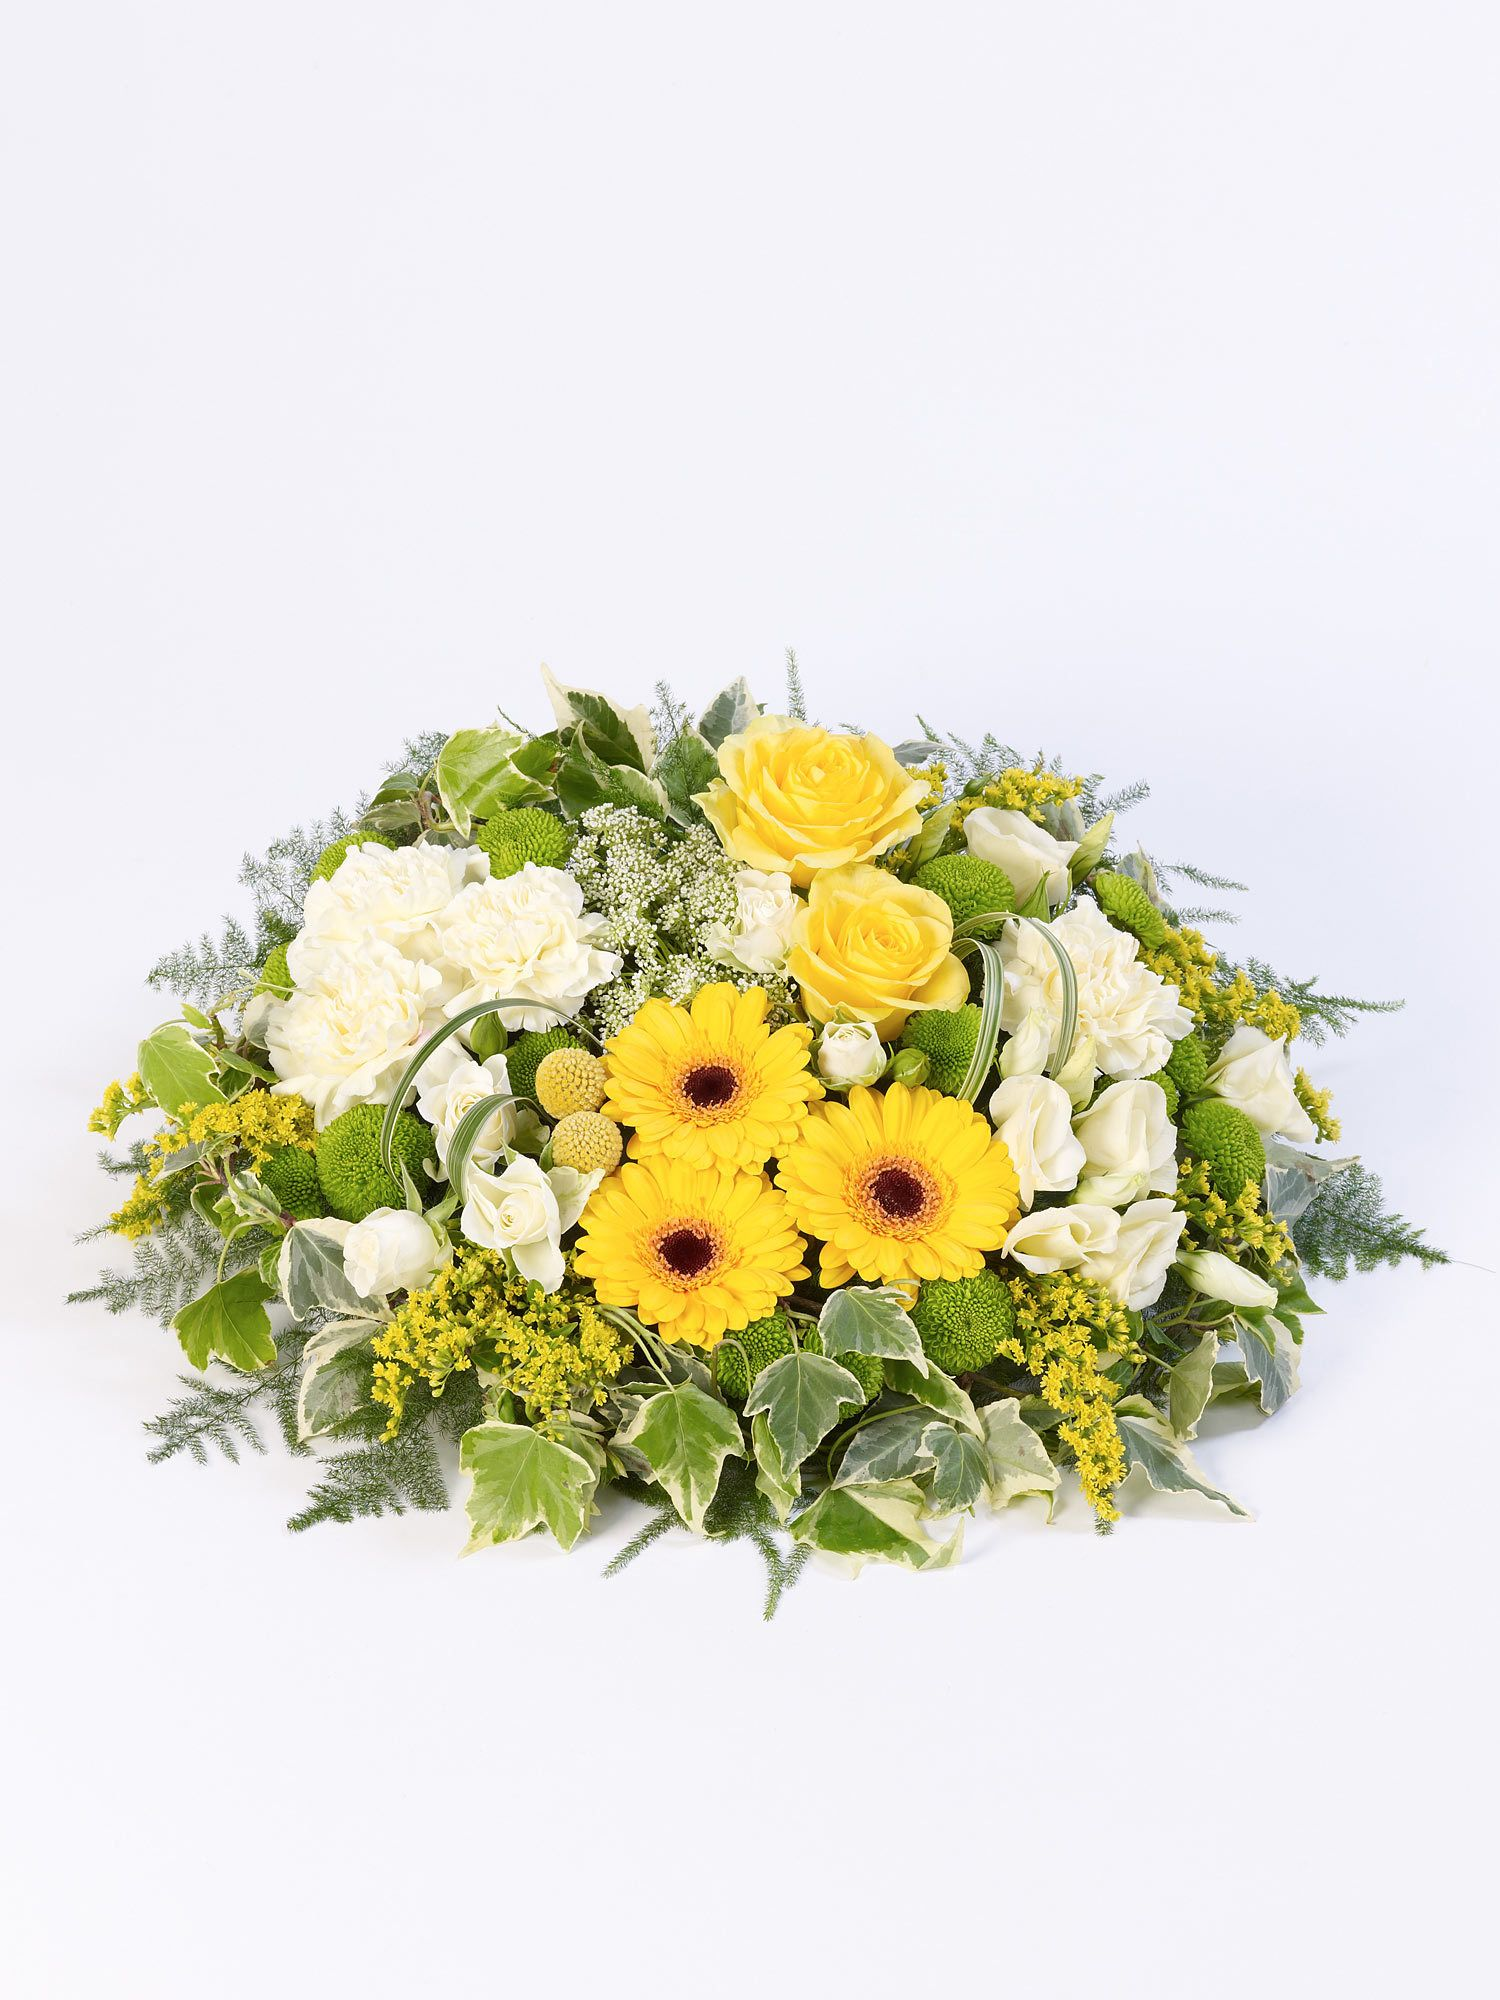 Walter smith woodland posy interflora flowers pinterest explore walter smith walter obrien and more dhlflorist Choice Image